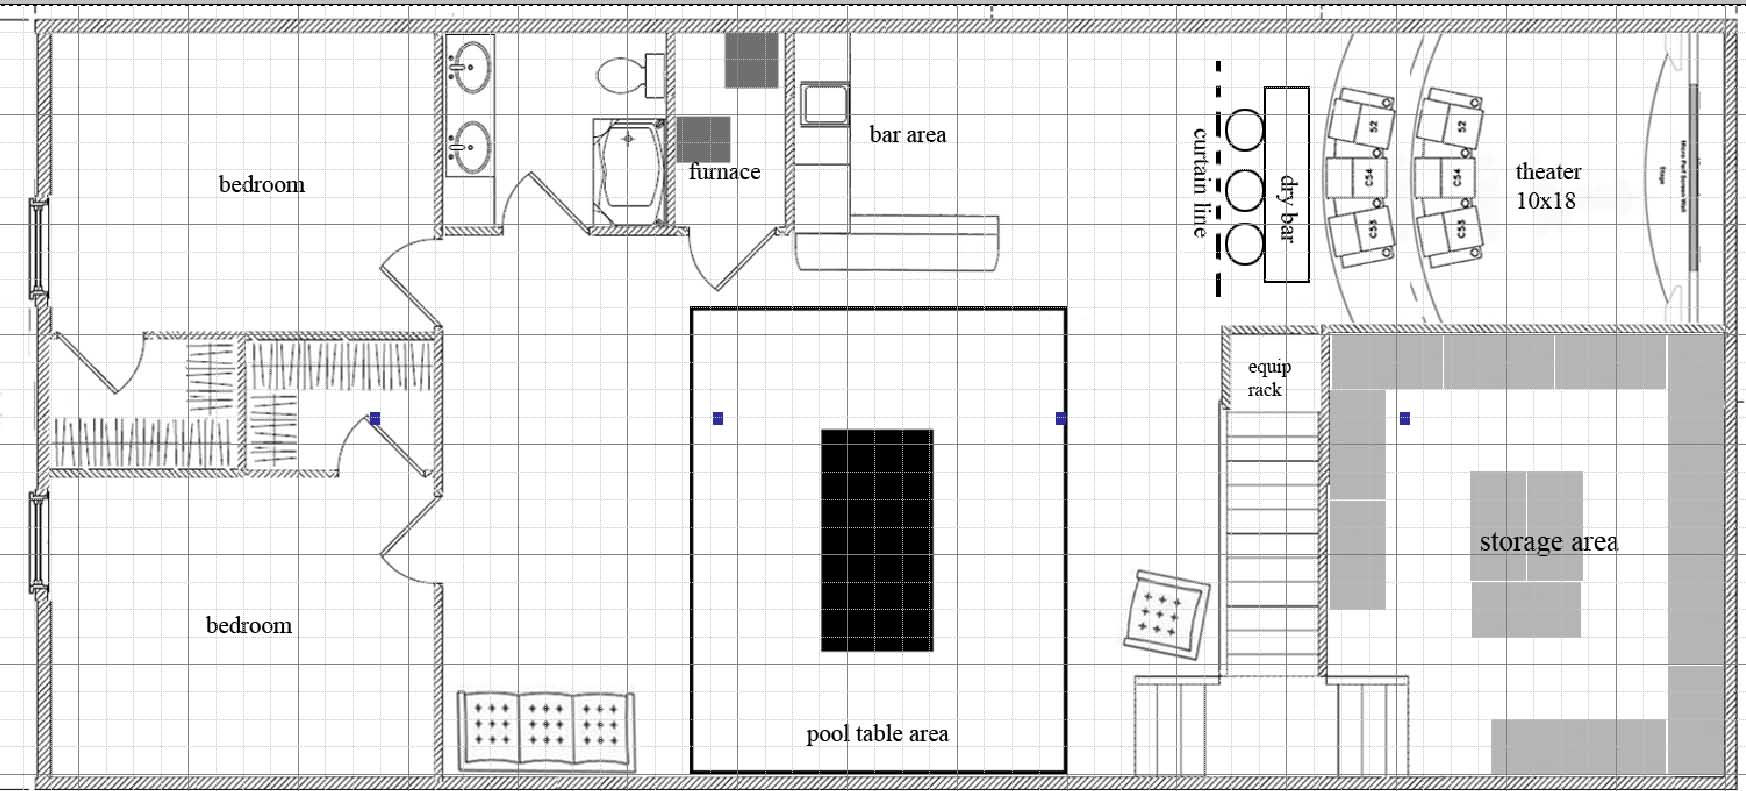 10x18 dedicater theater possible basement layout picture for Basement design layouts